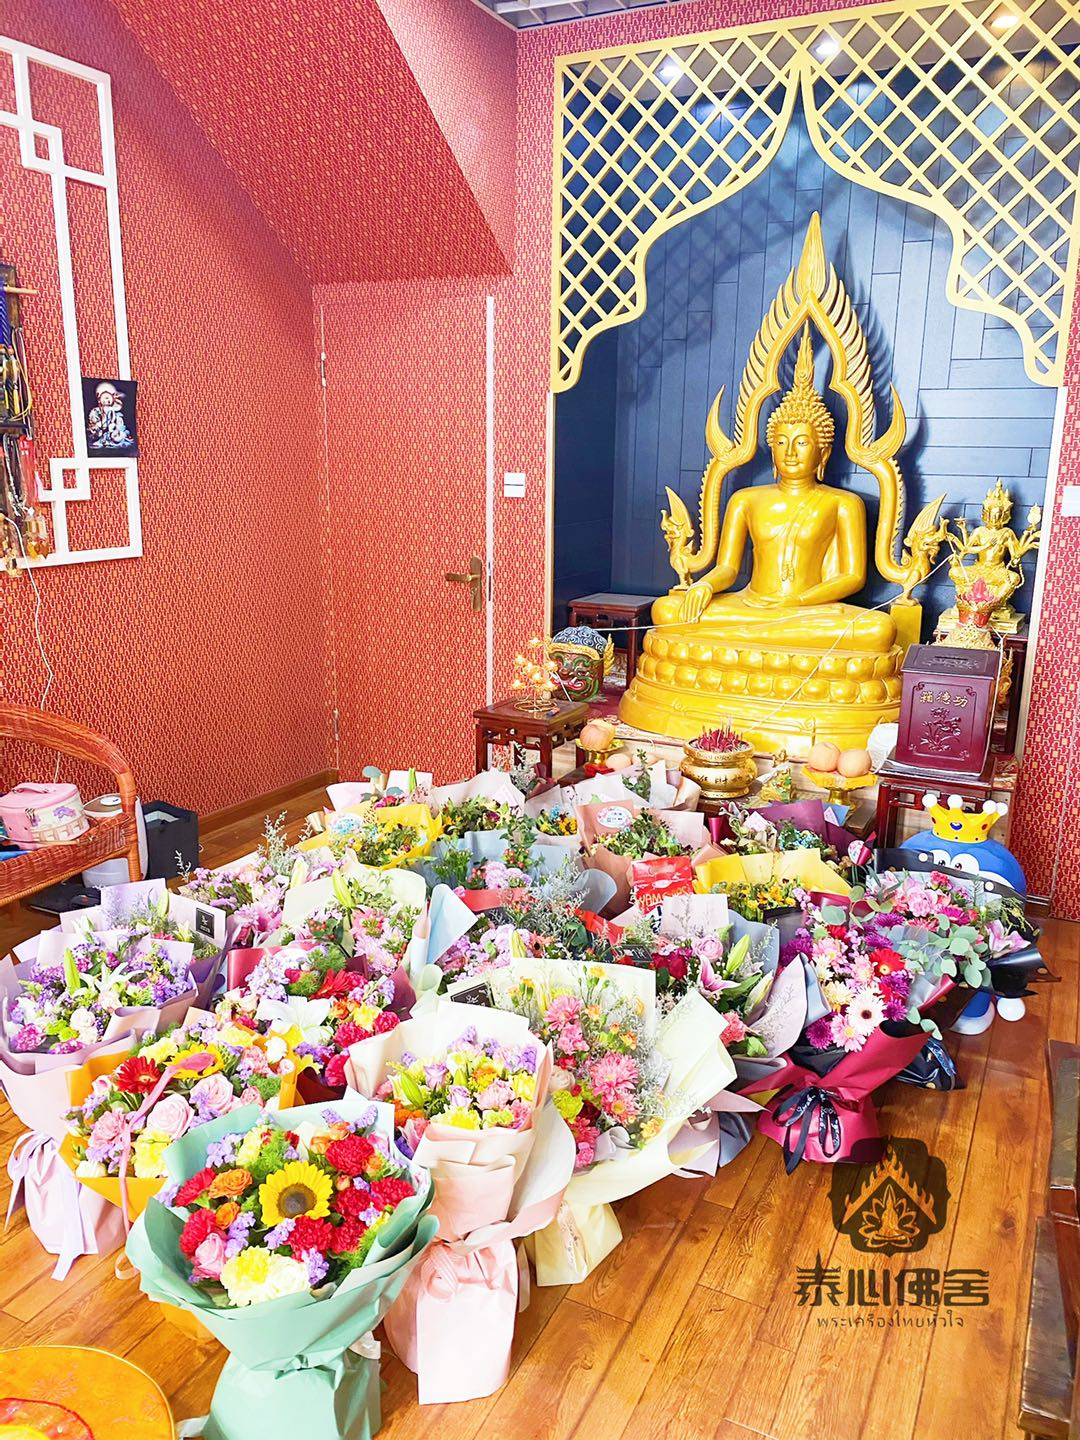 Taixin Buddhas daily offering of flowers